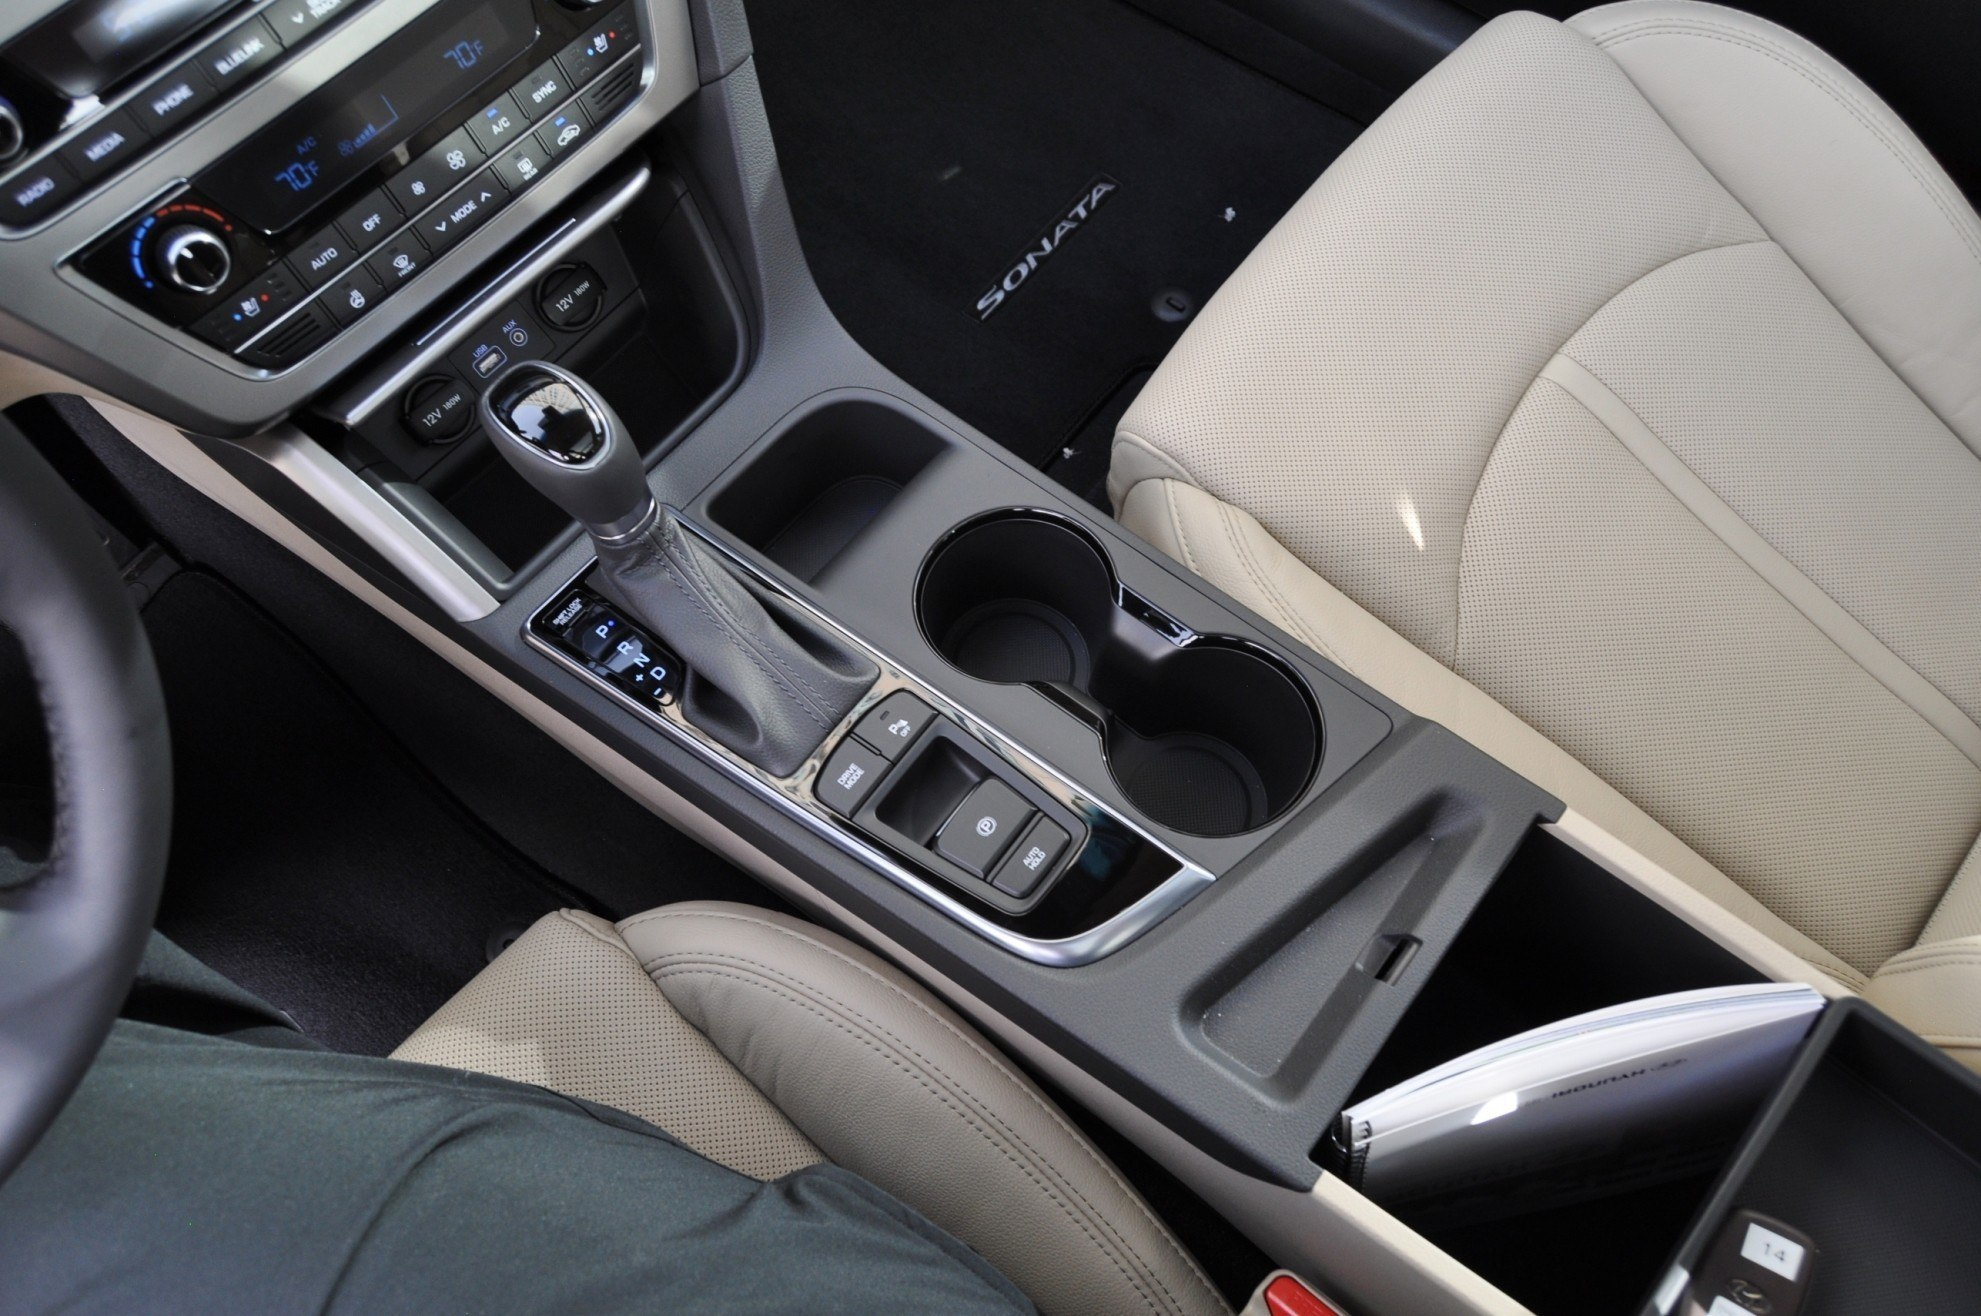 Road test review 2015 hyundai sonata interior focus - 2015 hyundai sonata interior pictures ...